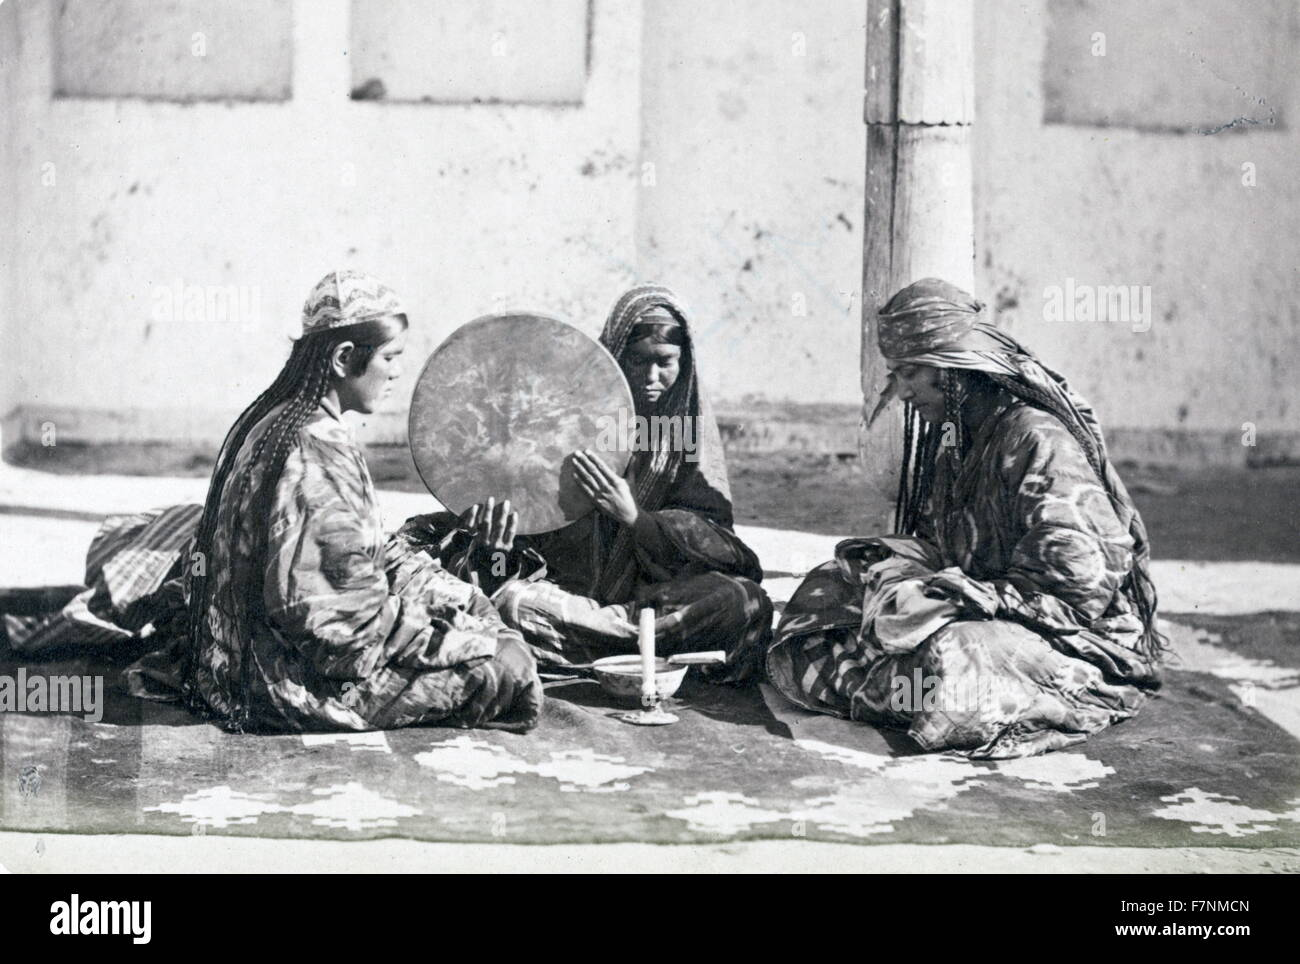 Tajik women 1900. Russian Imperialism led to the Russian Empire's conquest of Central Asia during the late 19th - Stock Image